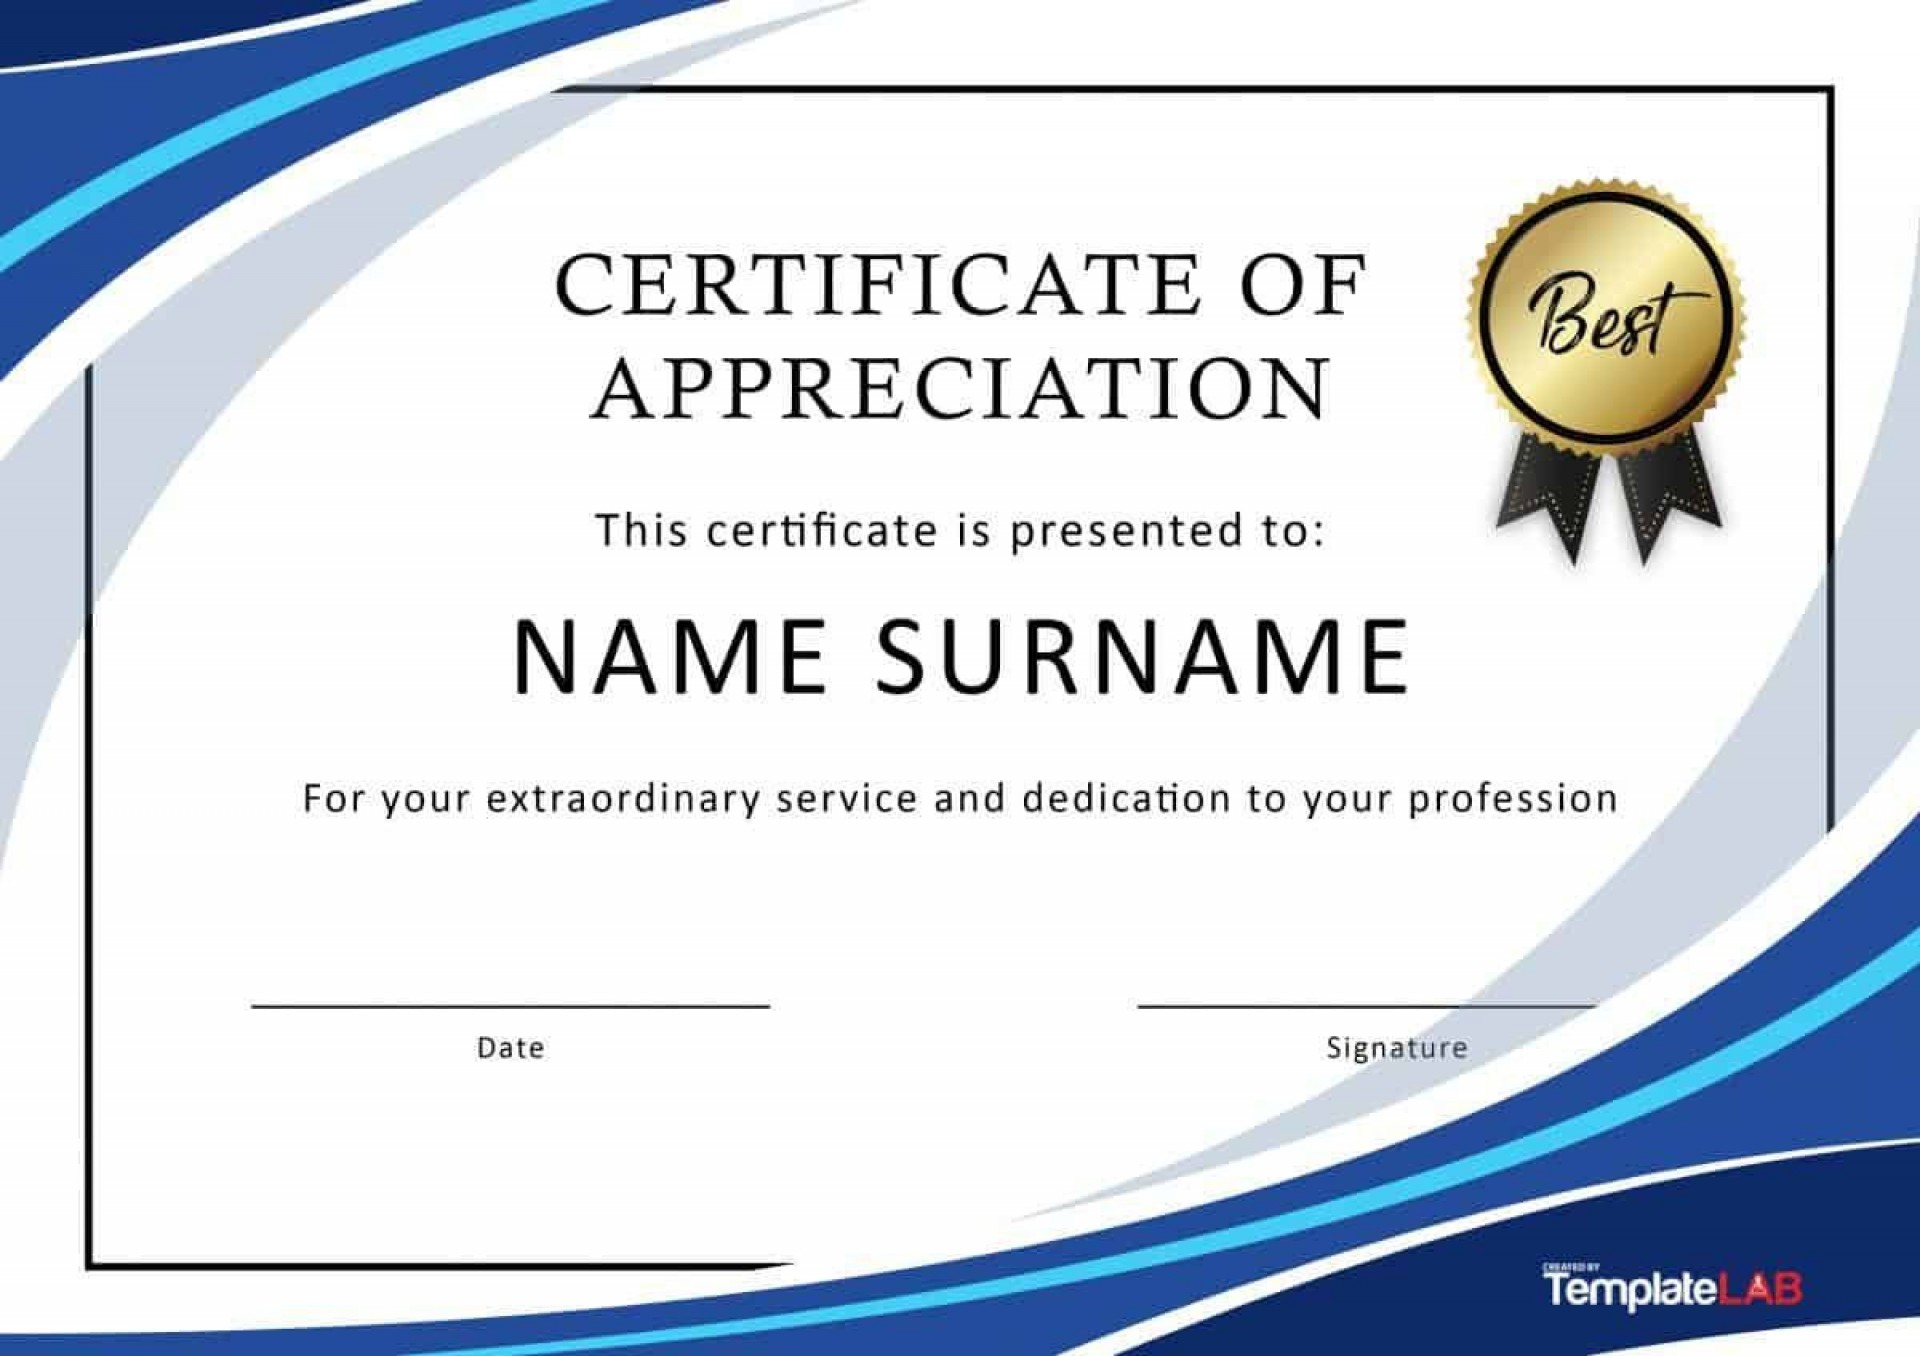 004 Top Certificate Of Appreciation Template Free Picture  Microsoft Word Download Publisher Editable1920